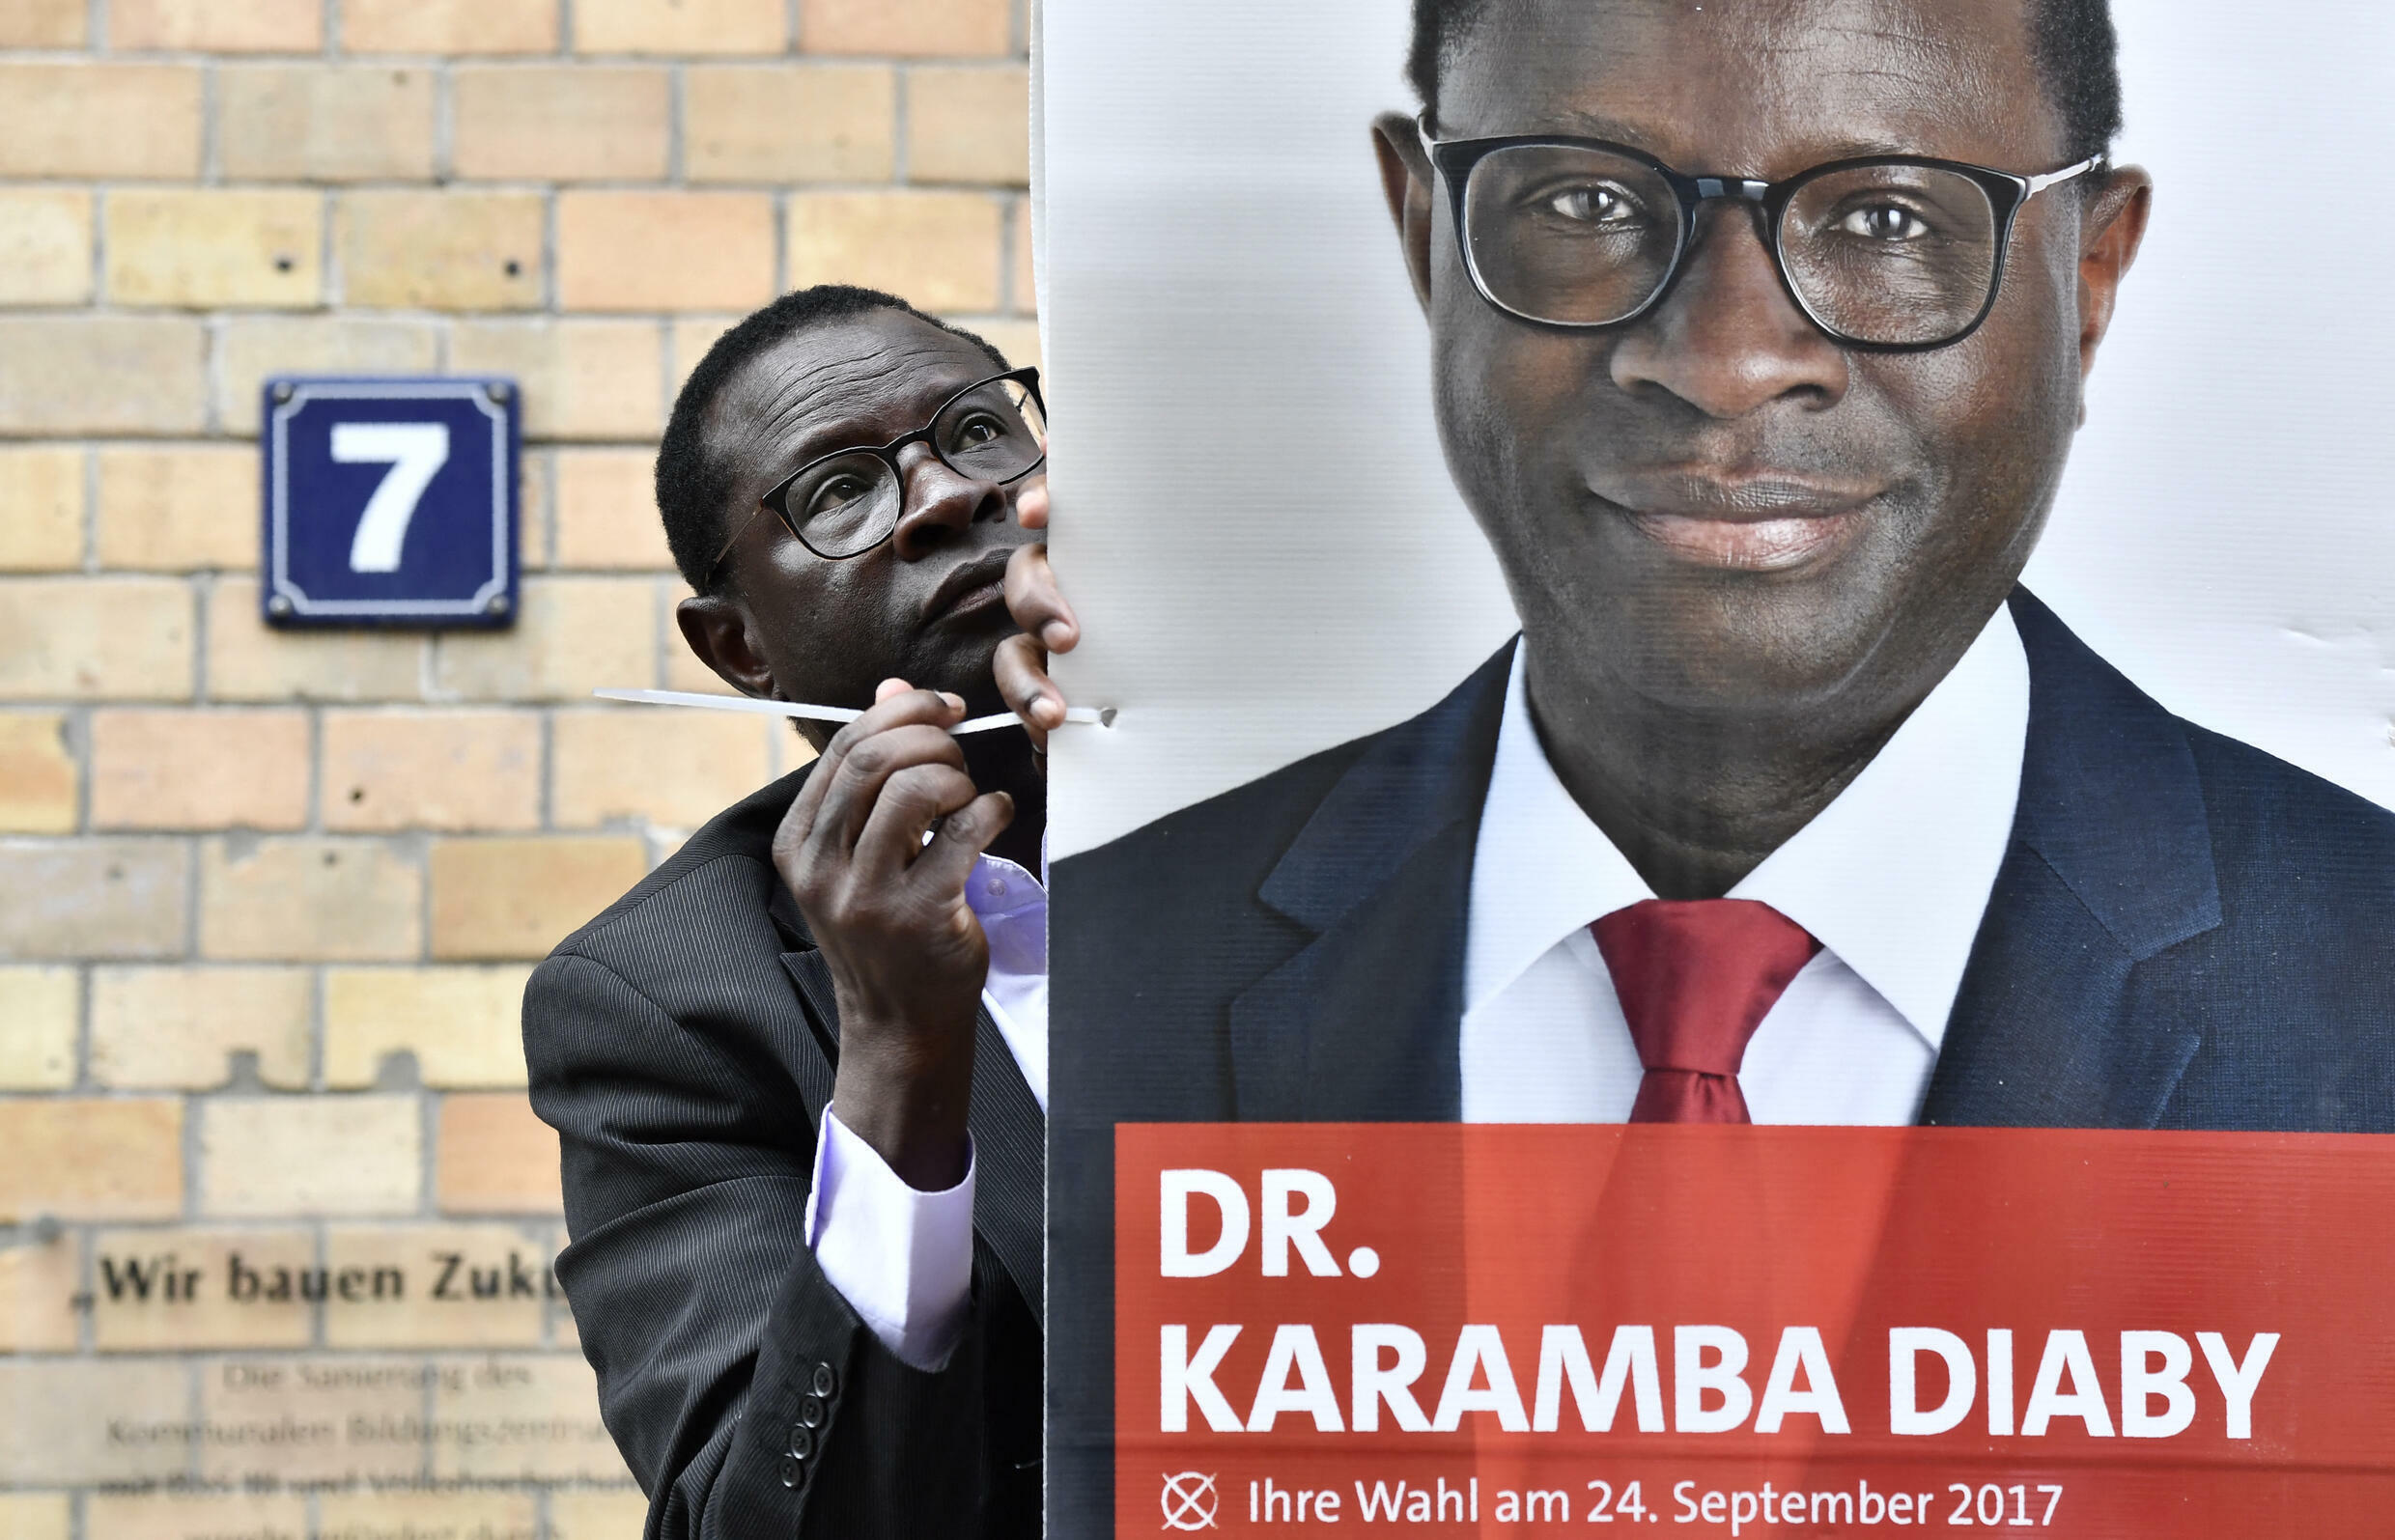 allemagne-parlement-electoin-karamba-diaby